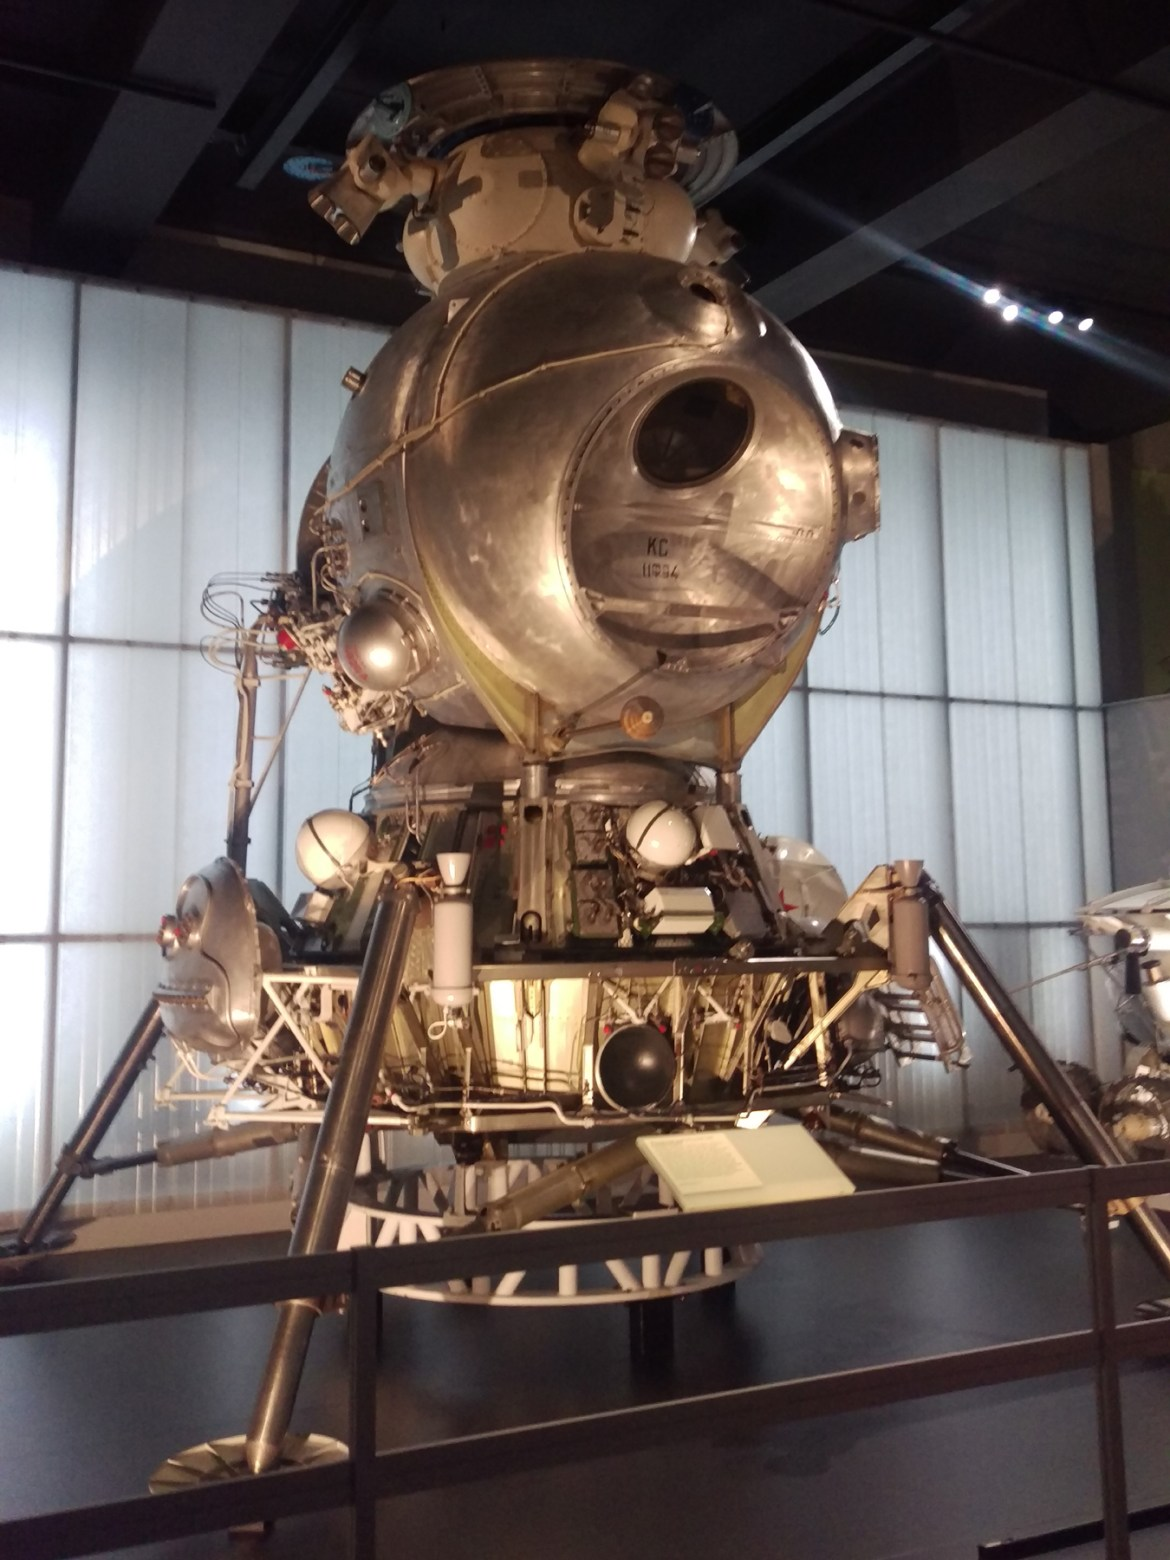 Russian LK-3 Lunar Lander on display at the Cosmonauts exhibition